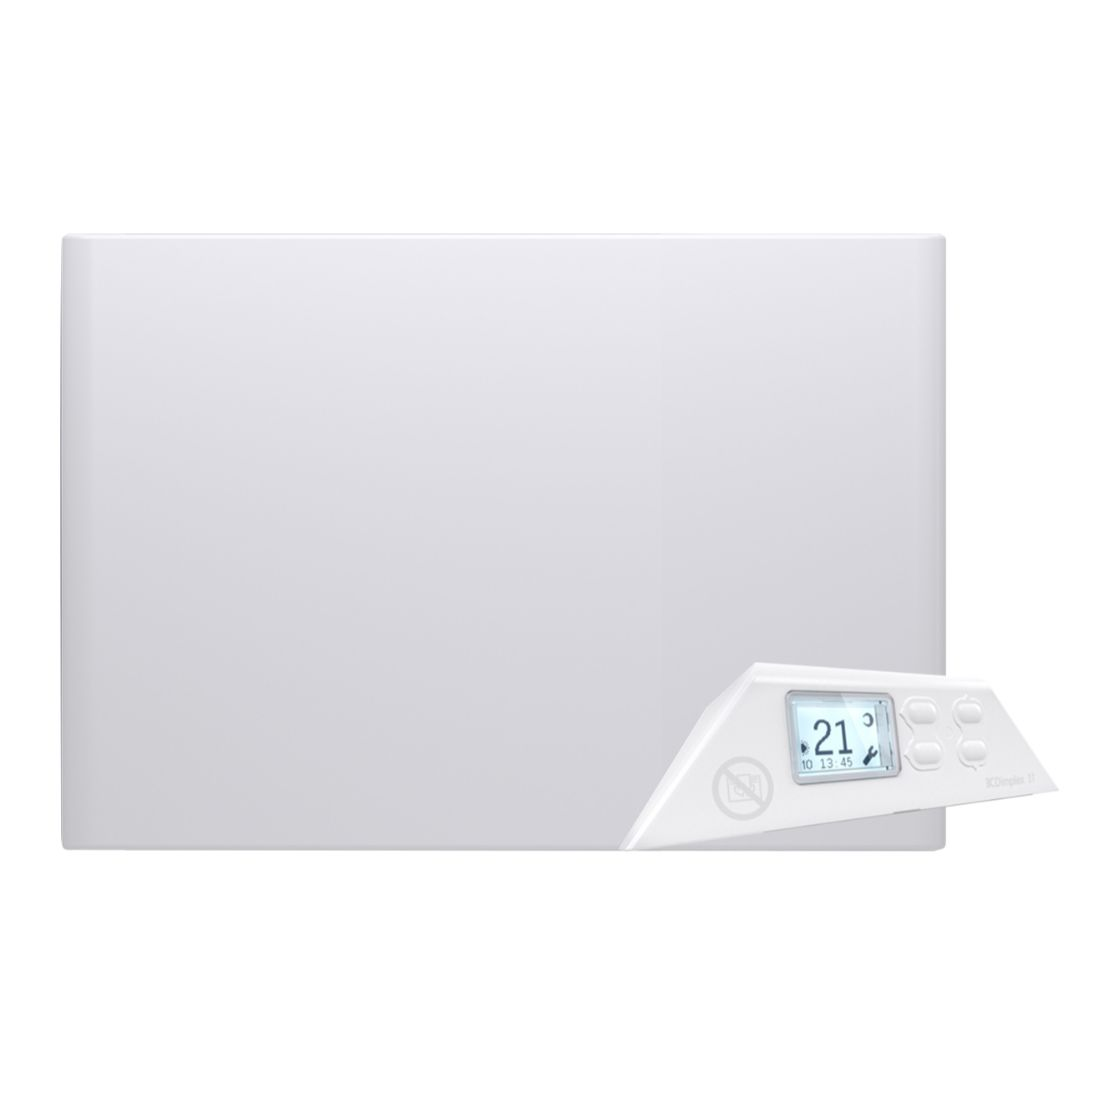 Alta 500W Panel Heater with Programmable Timer Unit